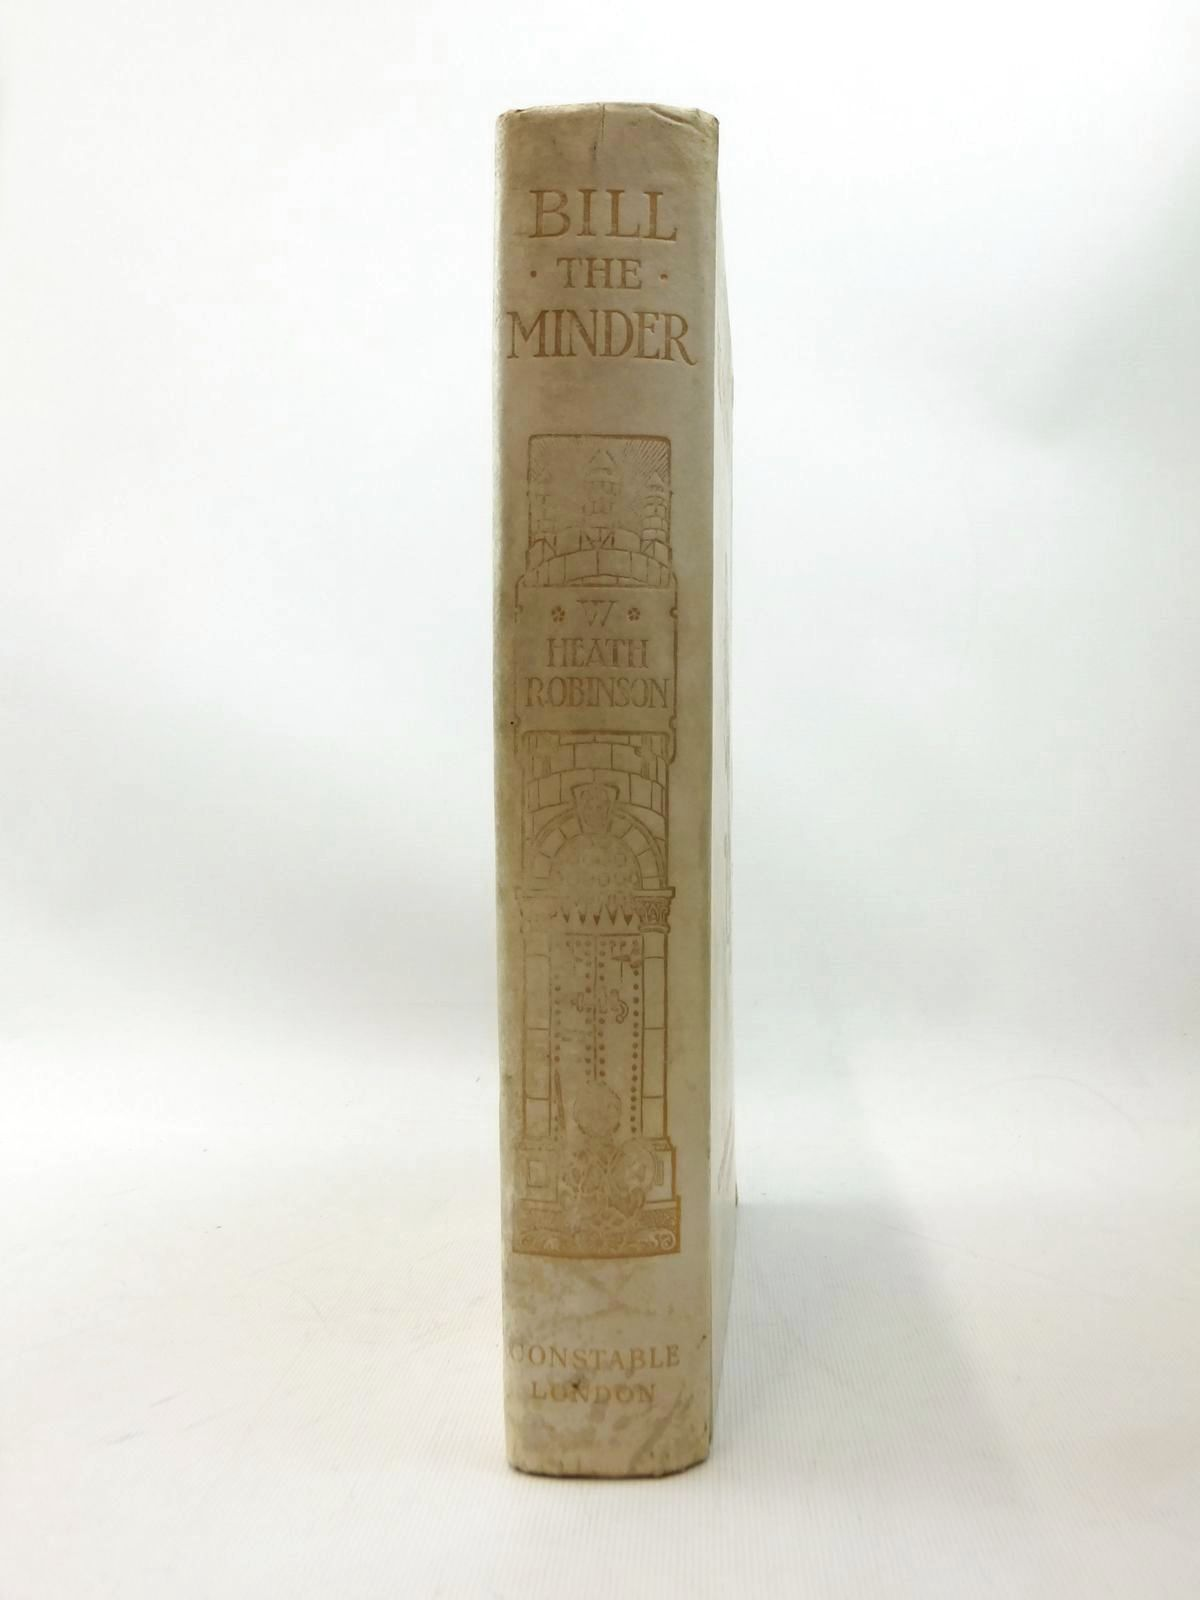 Photo of BILL THE MINDER written by Robinson, W. Heath illustrated by Robinson, W. Heath published by Constable and Company Ltd. (STOCK CODE: 1314202)  for sale by Stella & Rose's Books